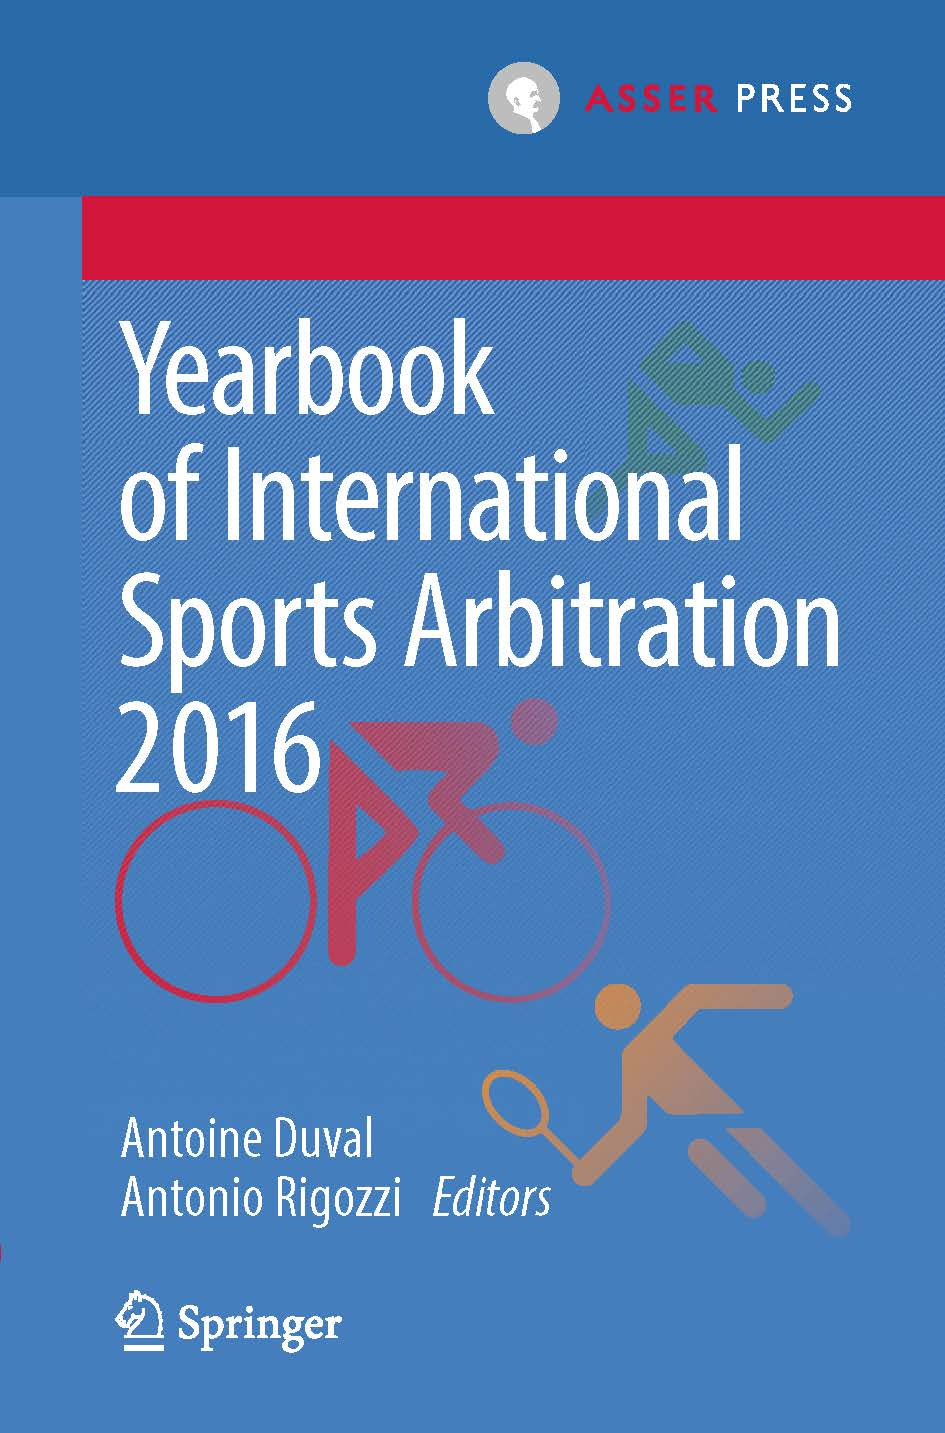 Yearbook of International Sports Arbitration 2016 - Volume 2